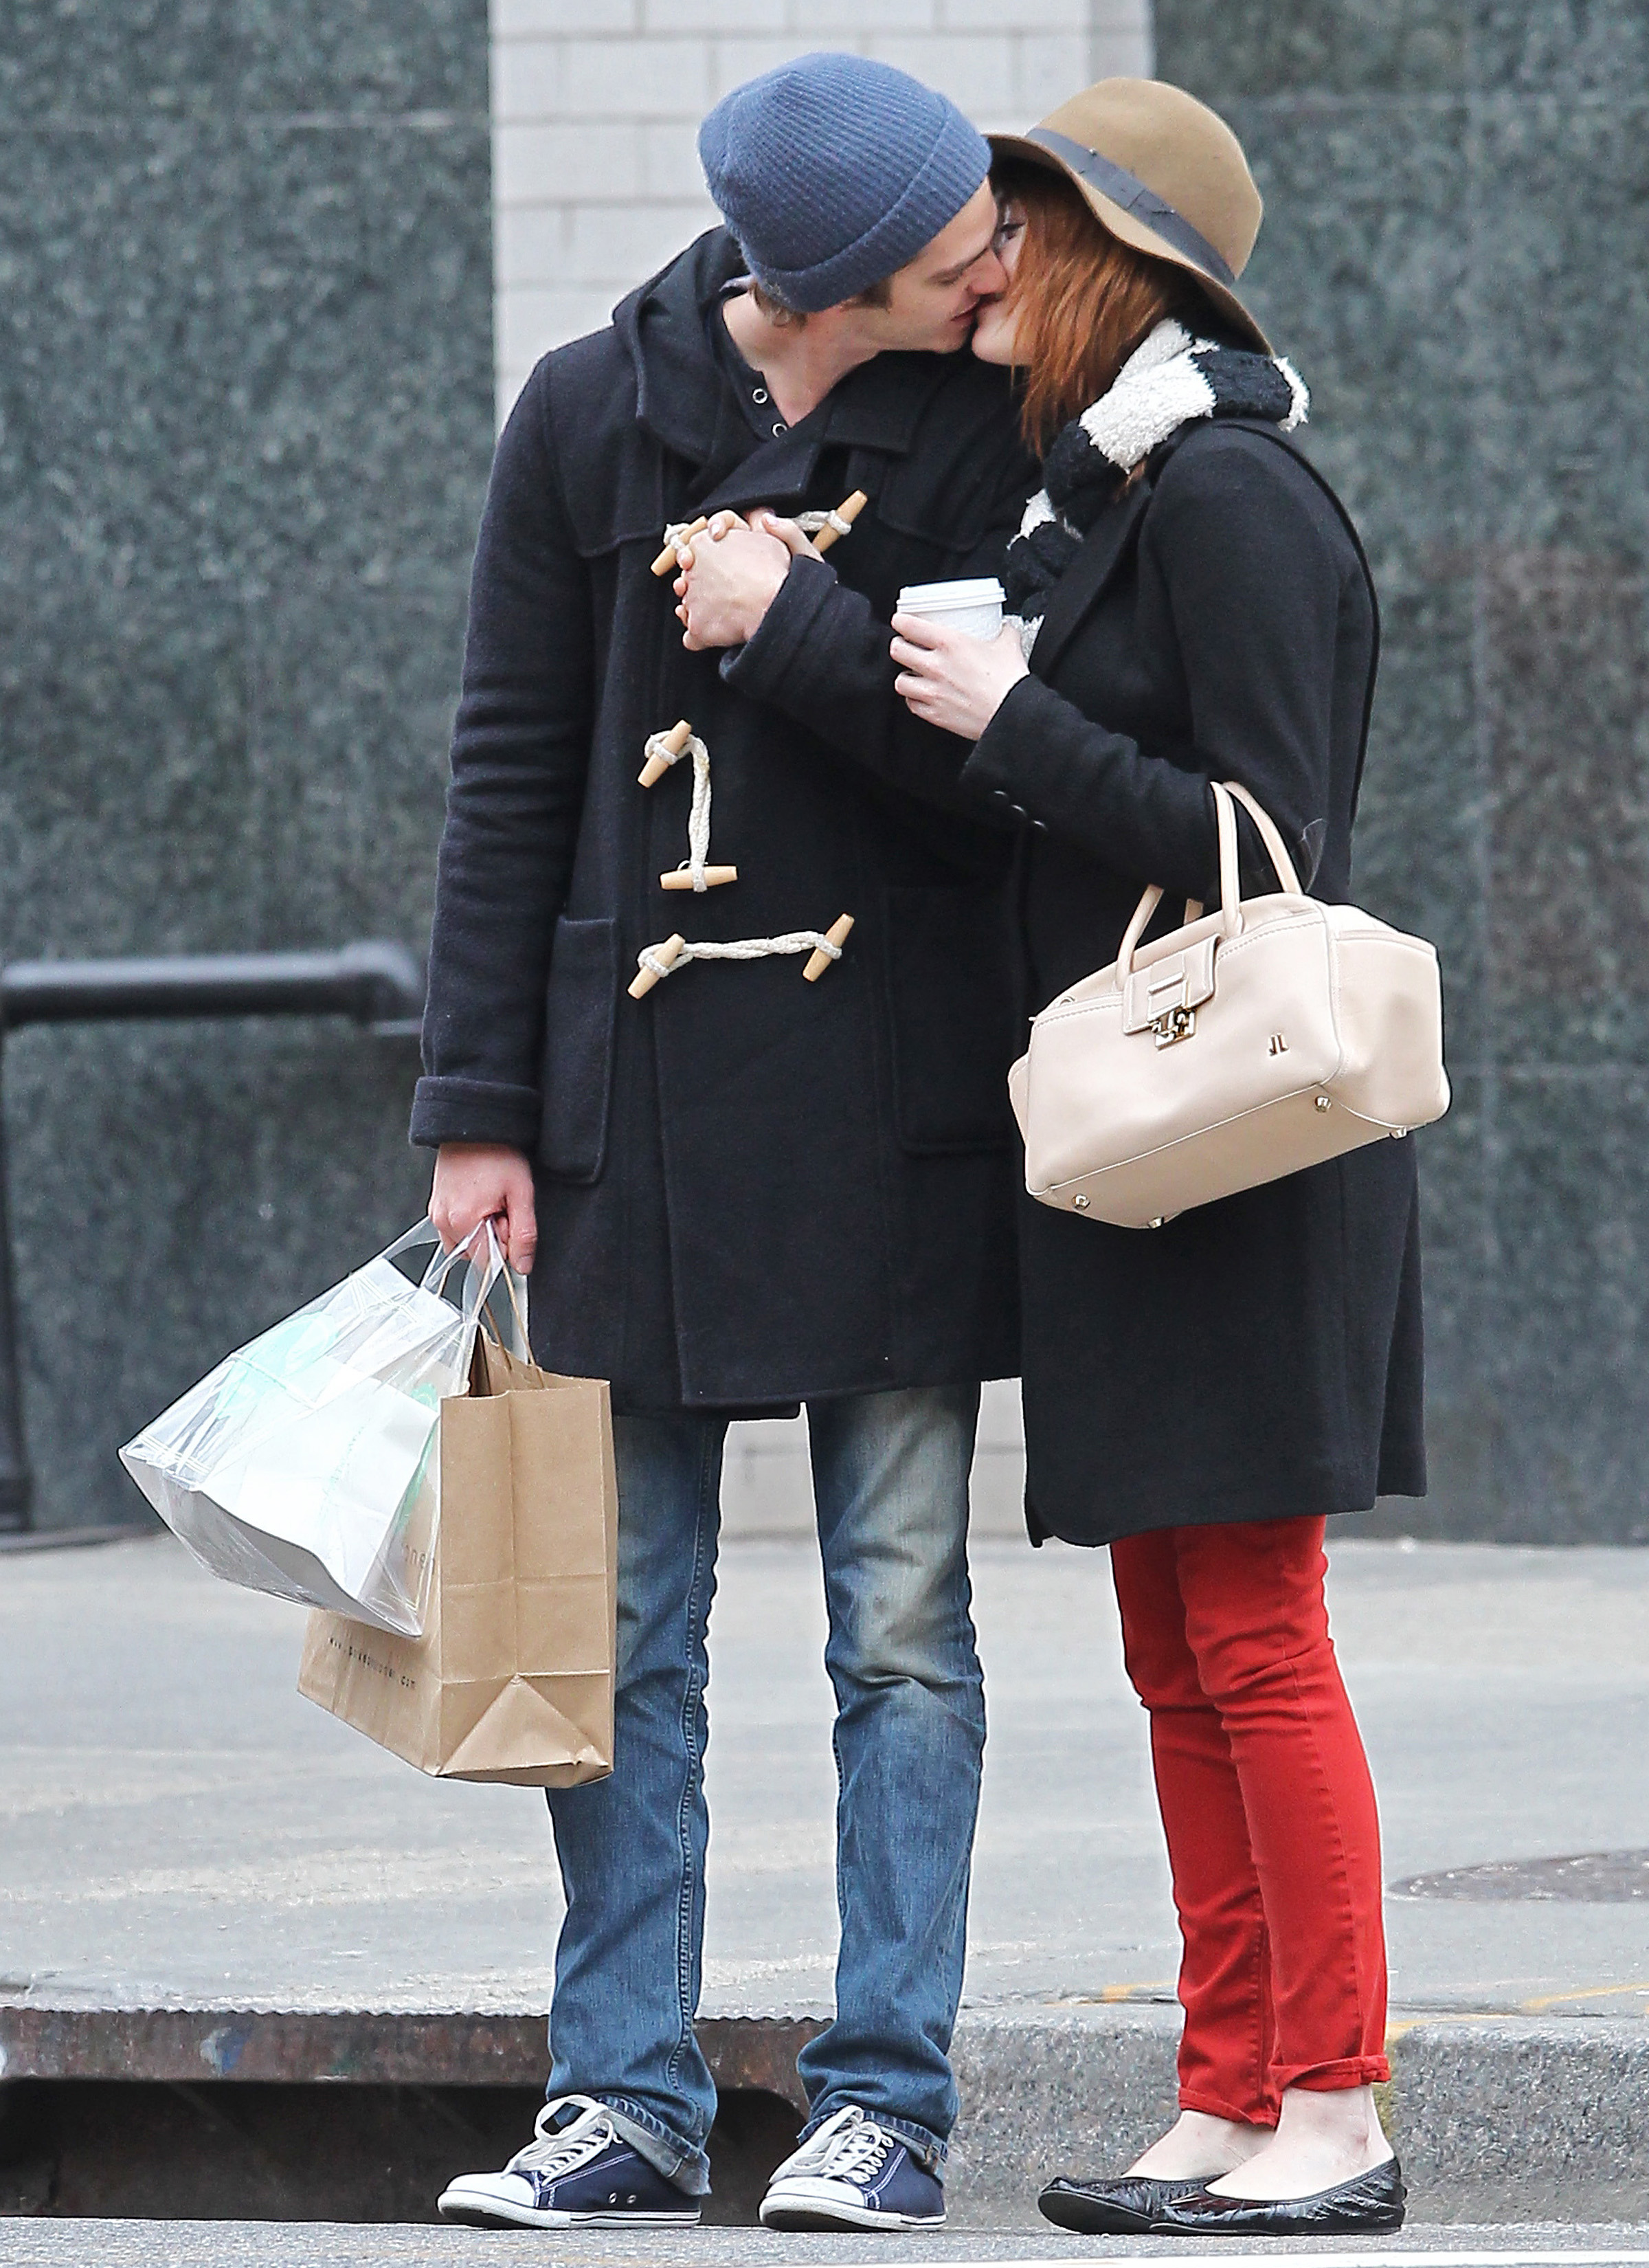 Will gluck emma stone dating andrew - is u kwon still dating after 3